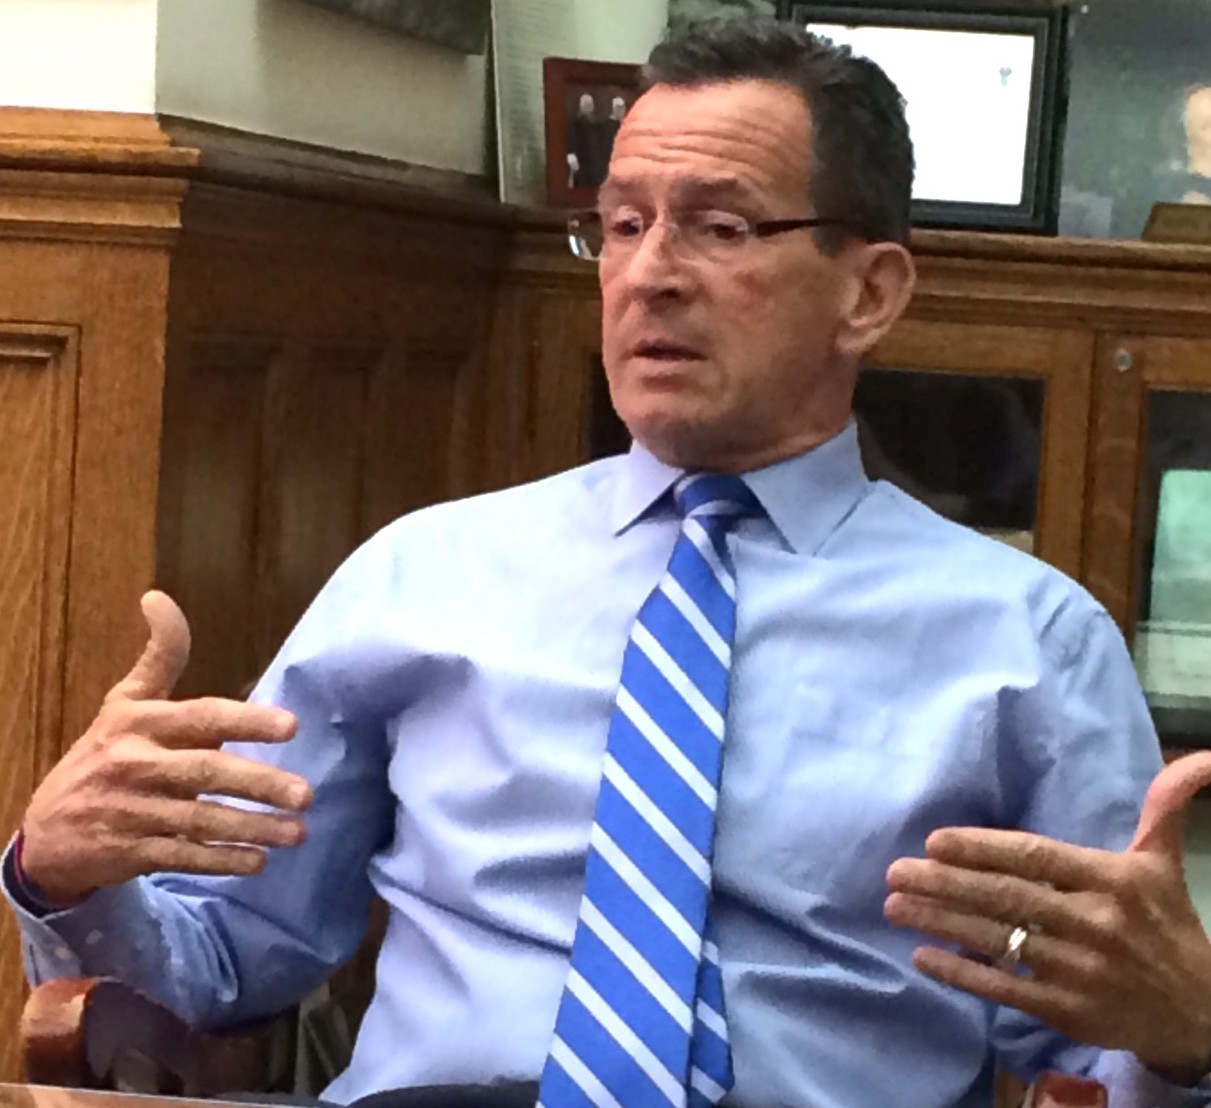 Malloy vetoes tax breaks passed on final night of session